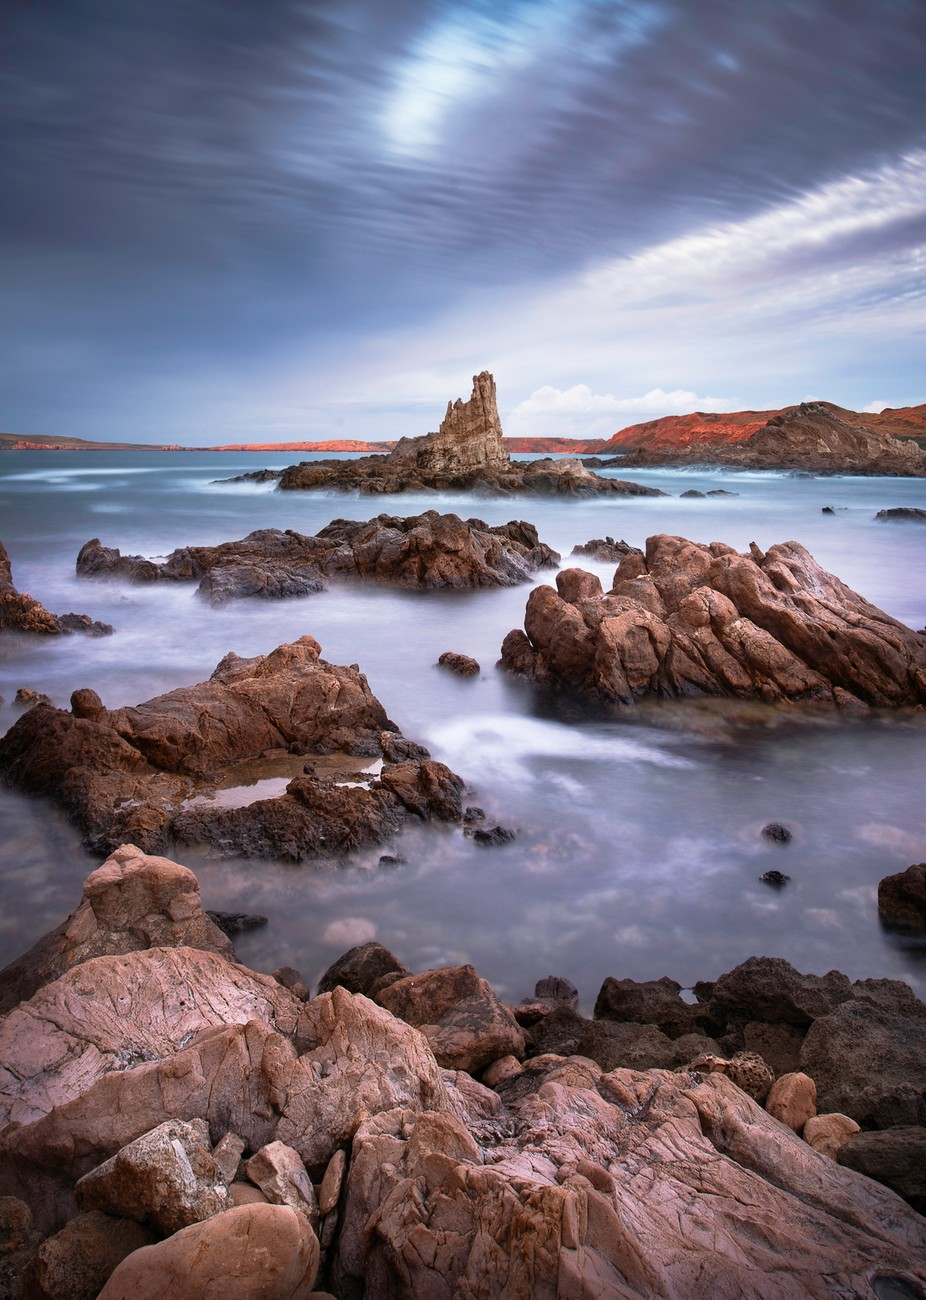 Pregonda_Menorca by gilesrrocholl - Boulders And Rocks Photo Contest